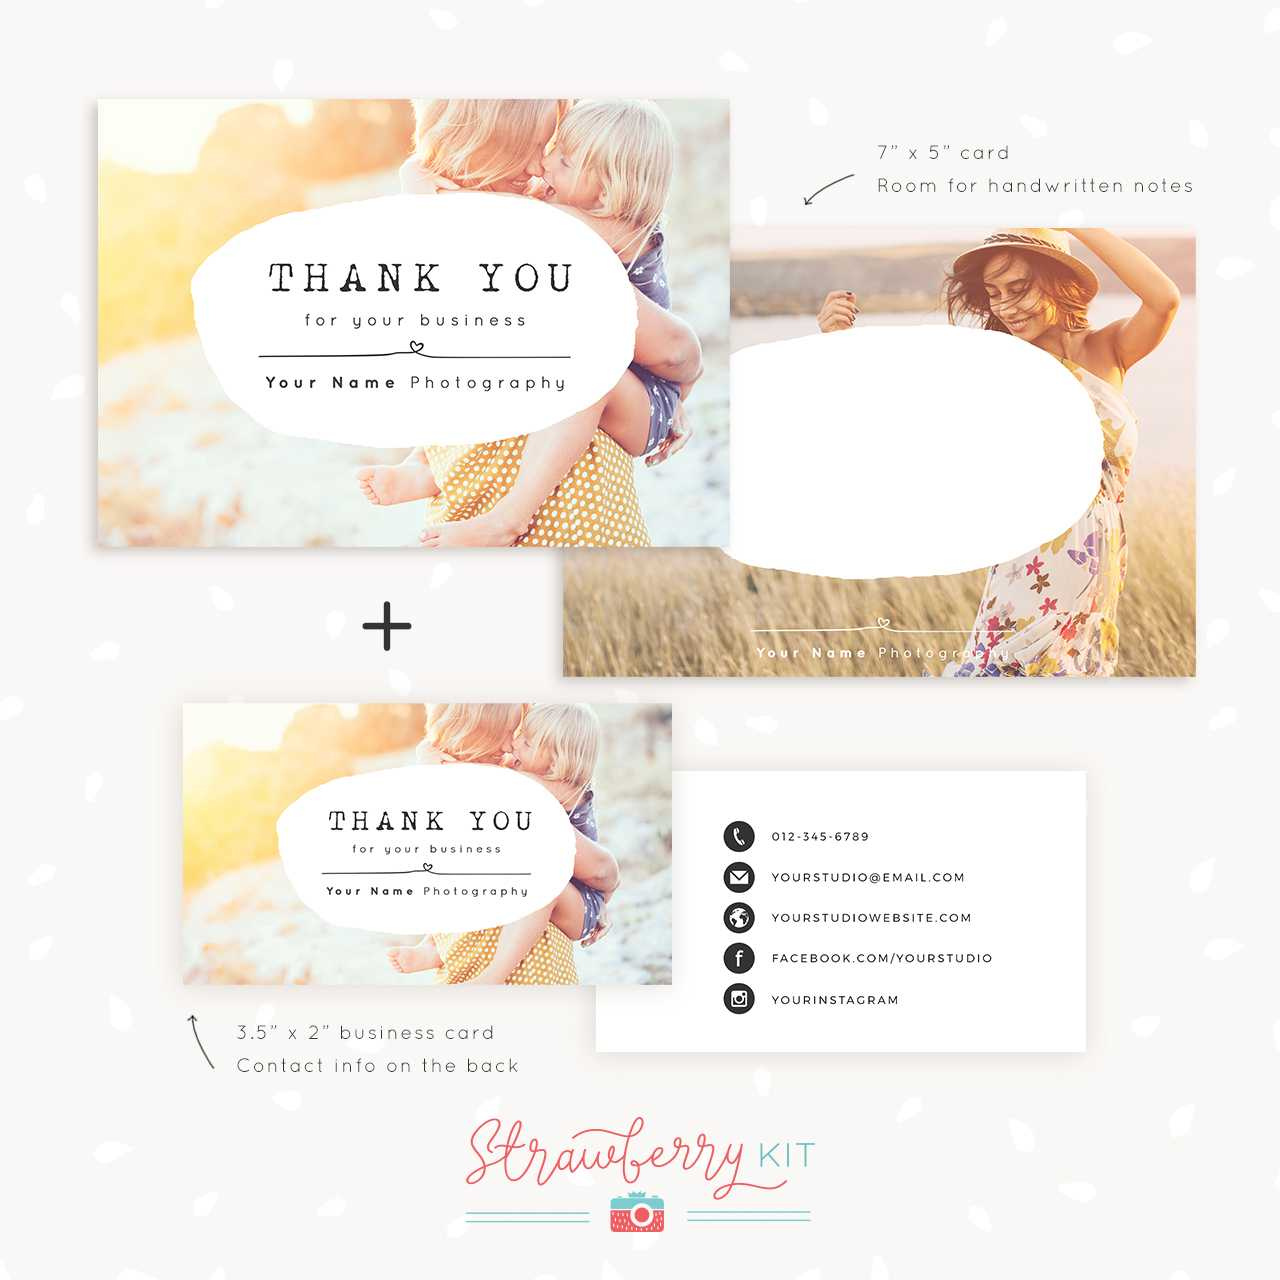 Thank You Note Card For Business | Set Of Two - Strawberry Kit throughout Thank You Note Cards Template